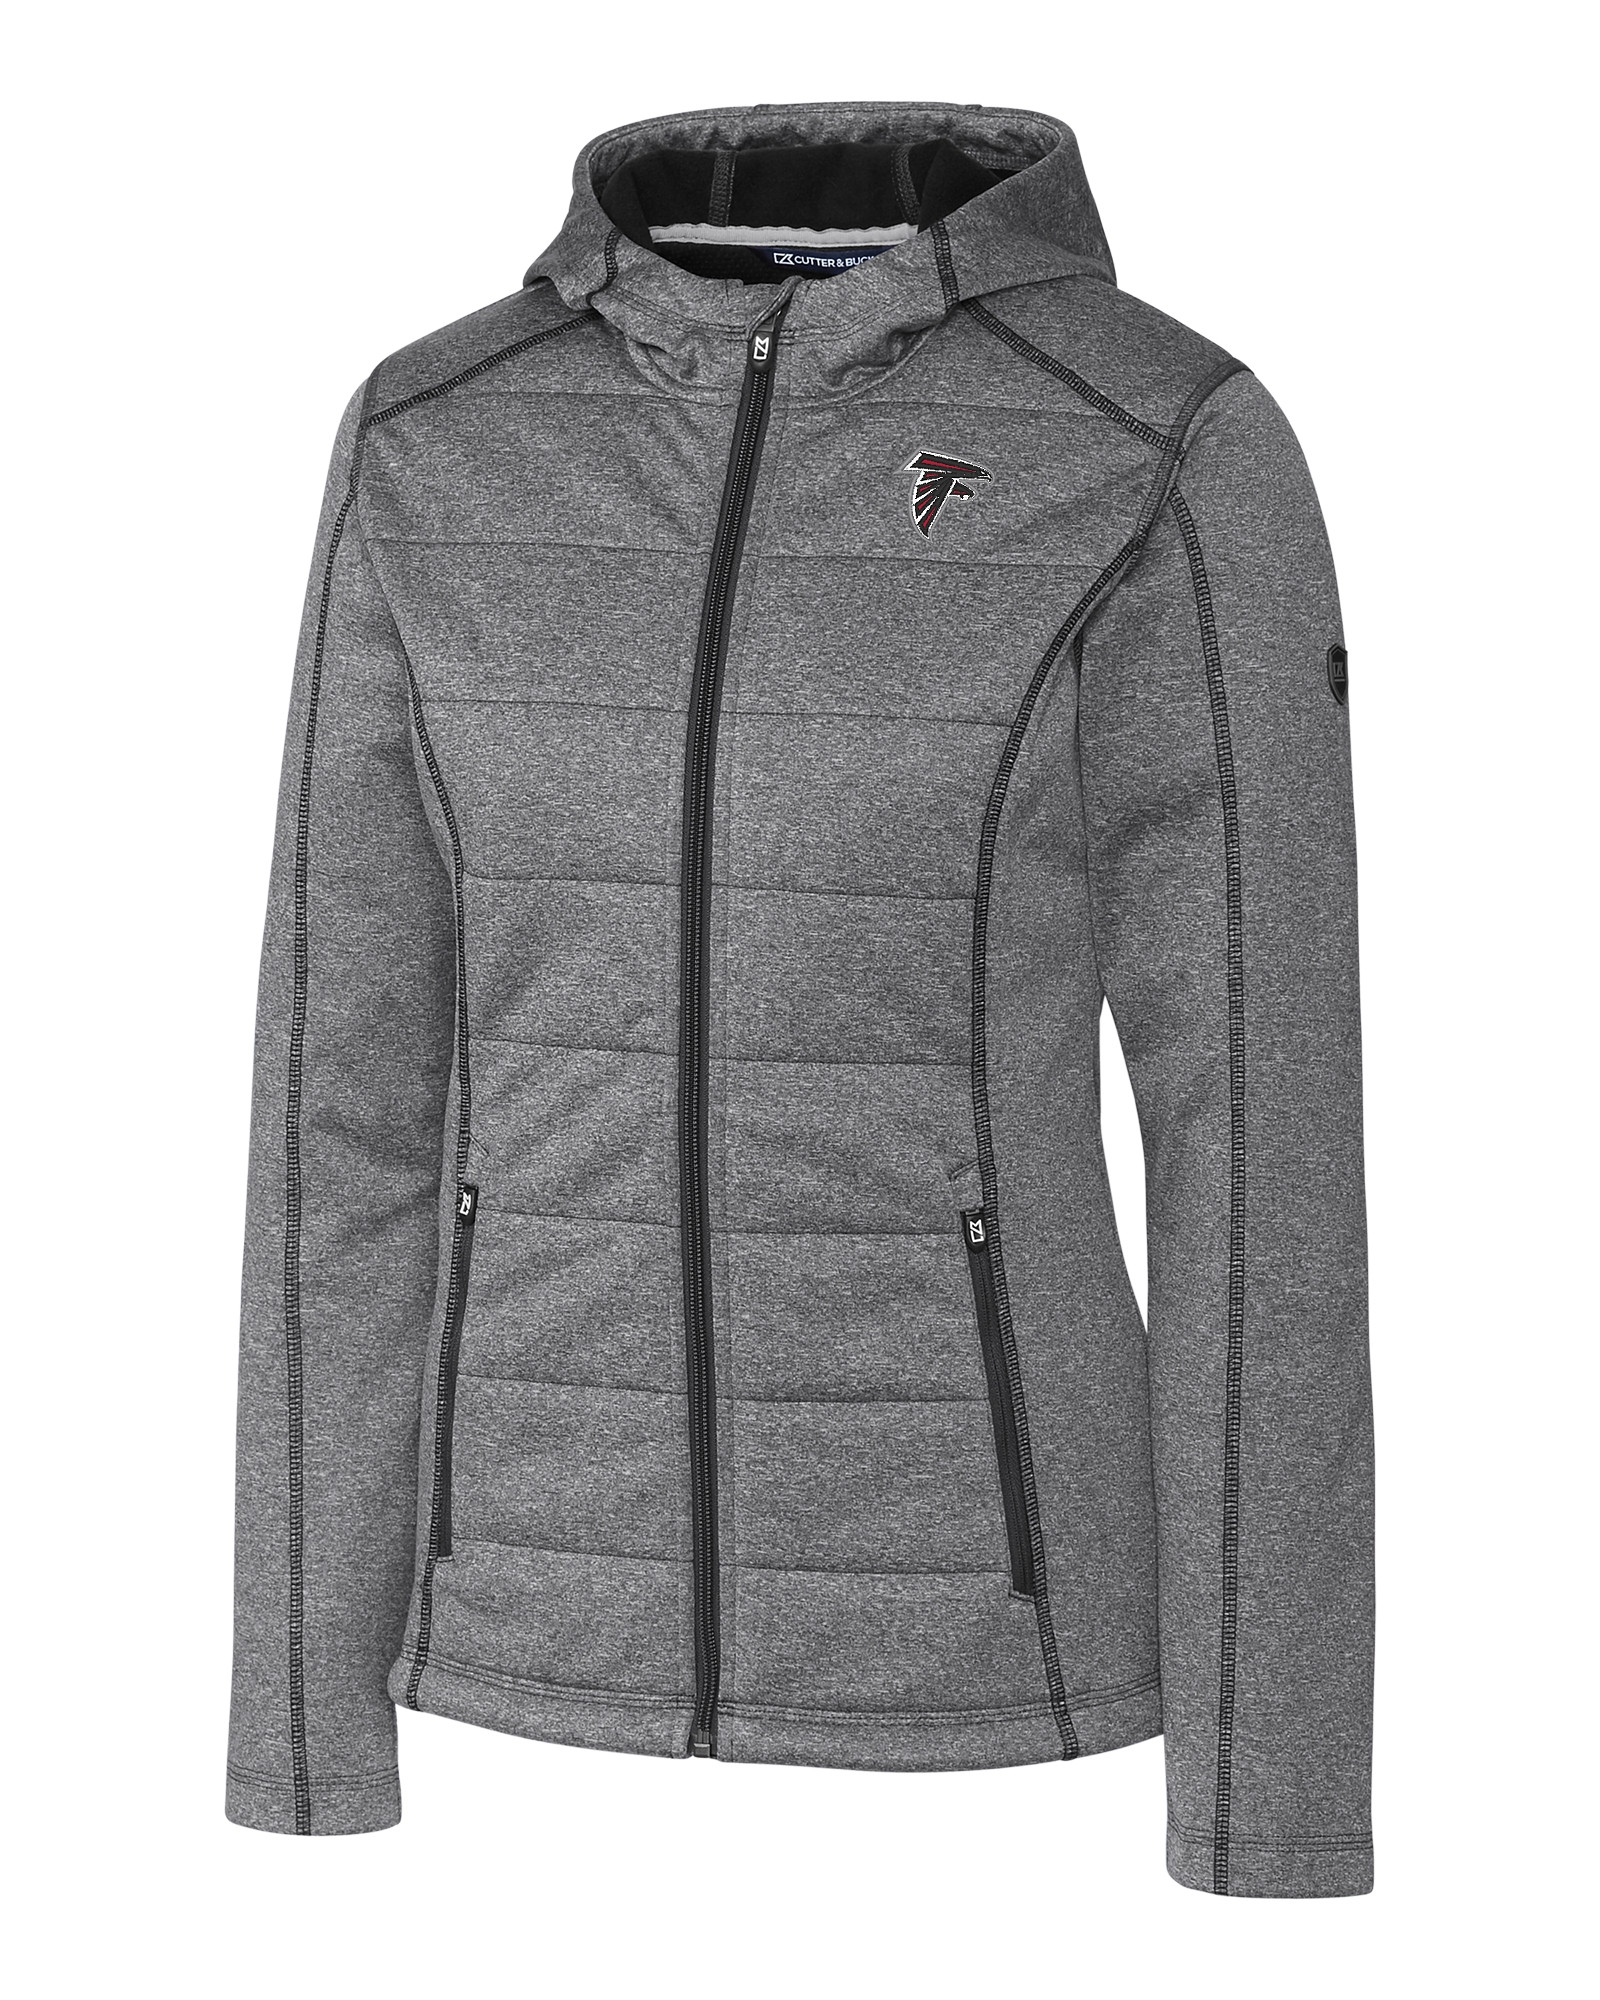 Atlanta Falcons Ladies' Altitude Jacket Cutter & Buck